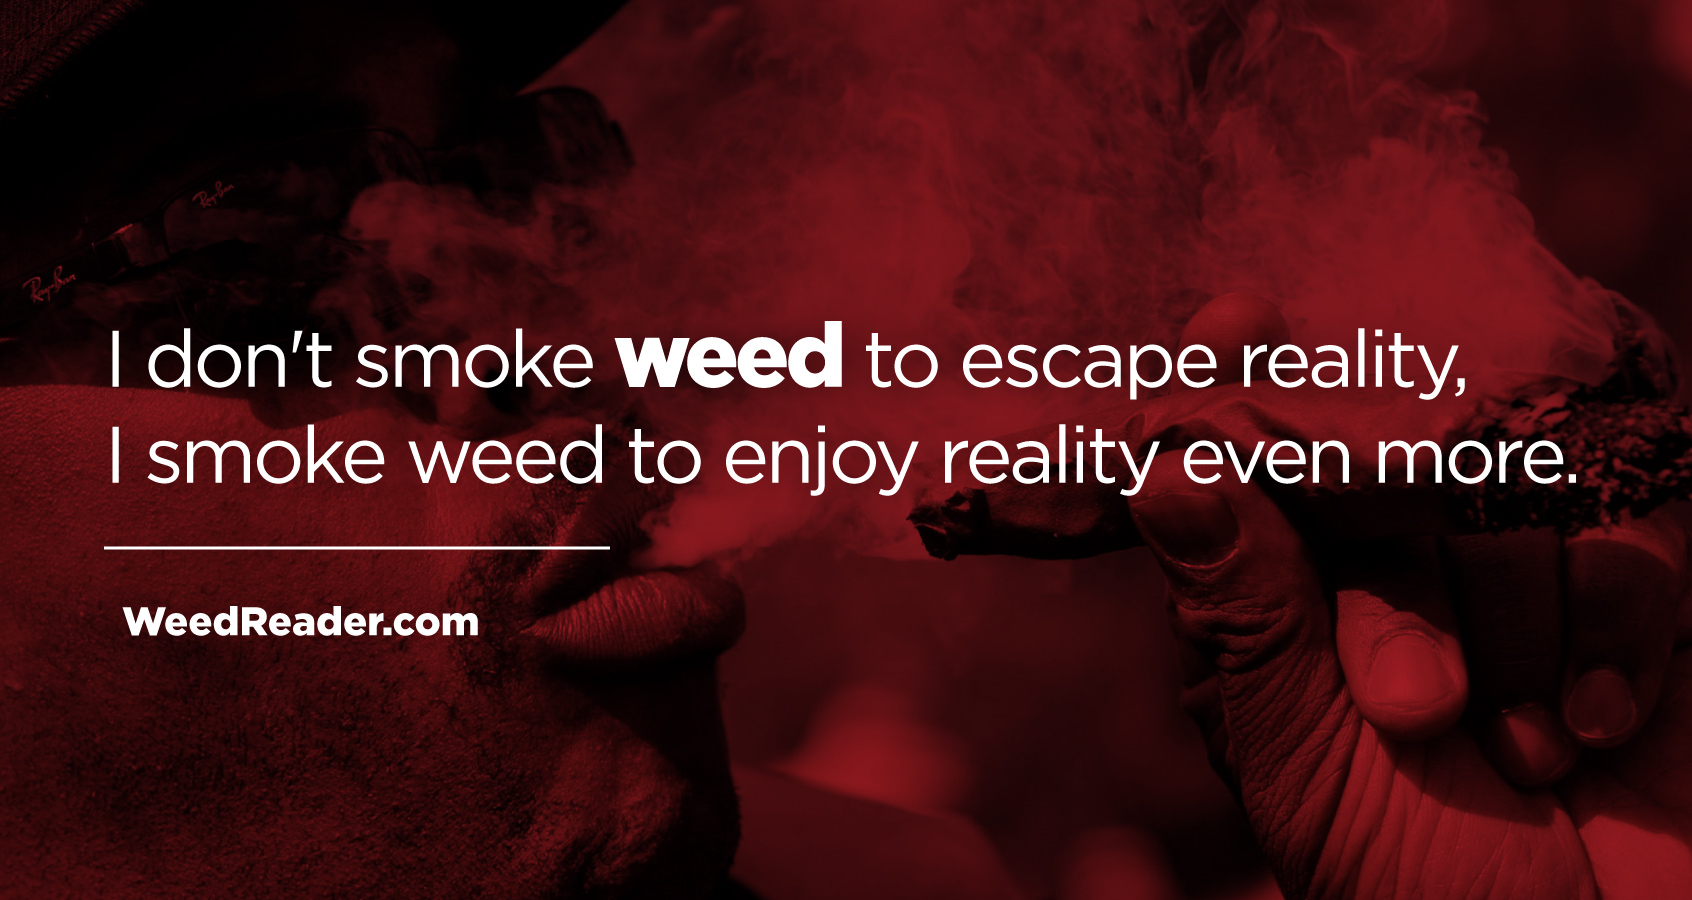 I don't smoke weed to escape reality, I smoke weed to enjoy reality even more